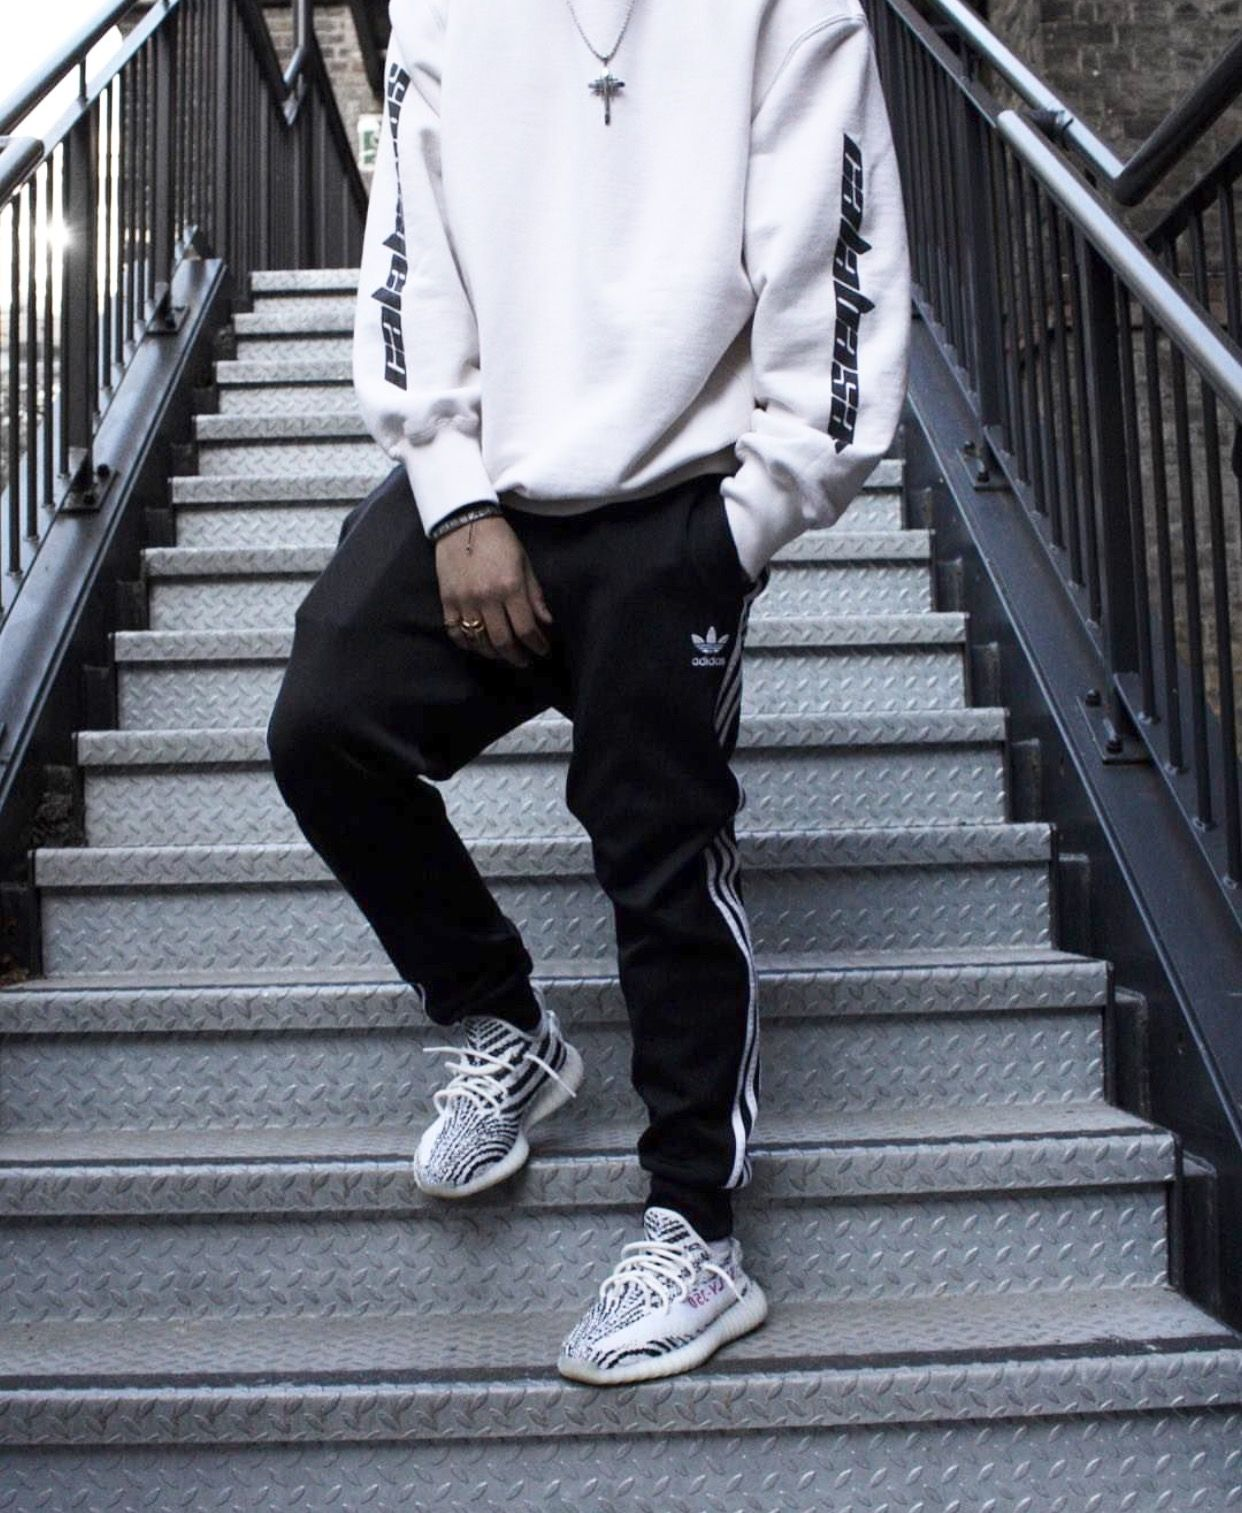 kortingsbon super schattig discountwinkel Vanessa Lawrence on in 2019 | Yeezy outfit, Yeezy fashion ...